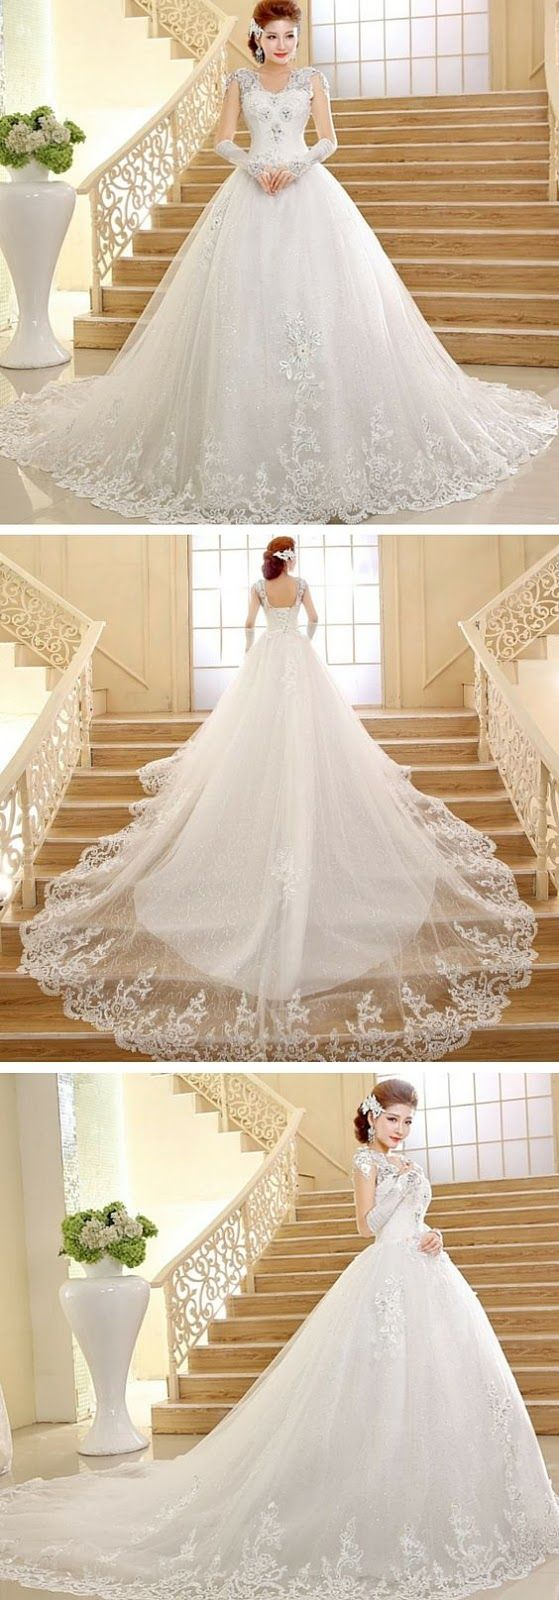 wedding gown outfit dresses for amazing look vintage lace ball